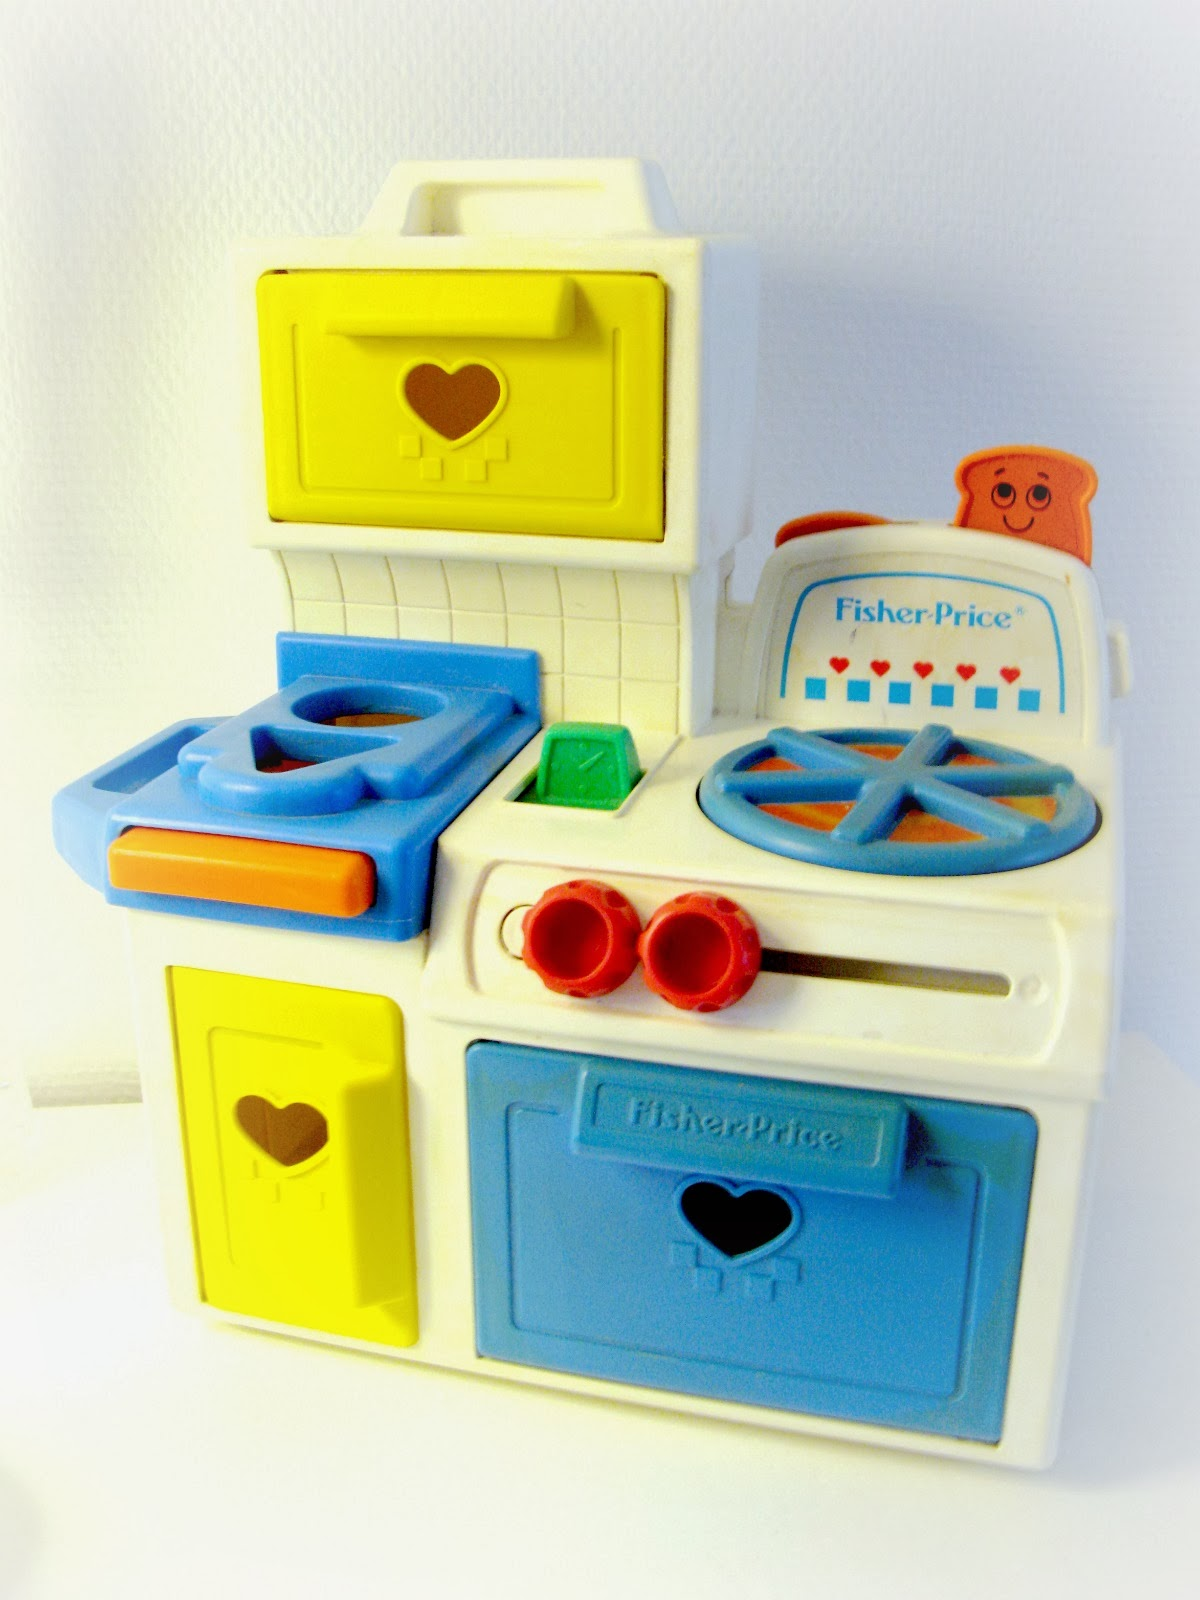 fisher price vintage kitchen. Black Bedroom Furniture Sets. Home Design Ideas